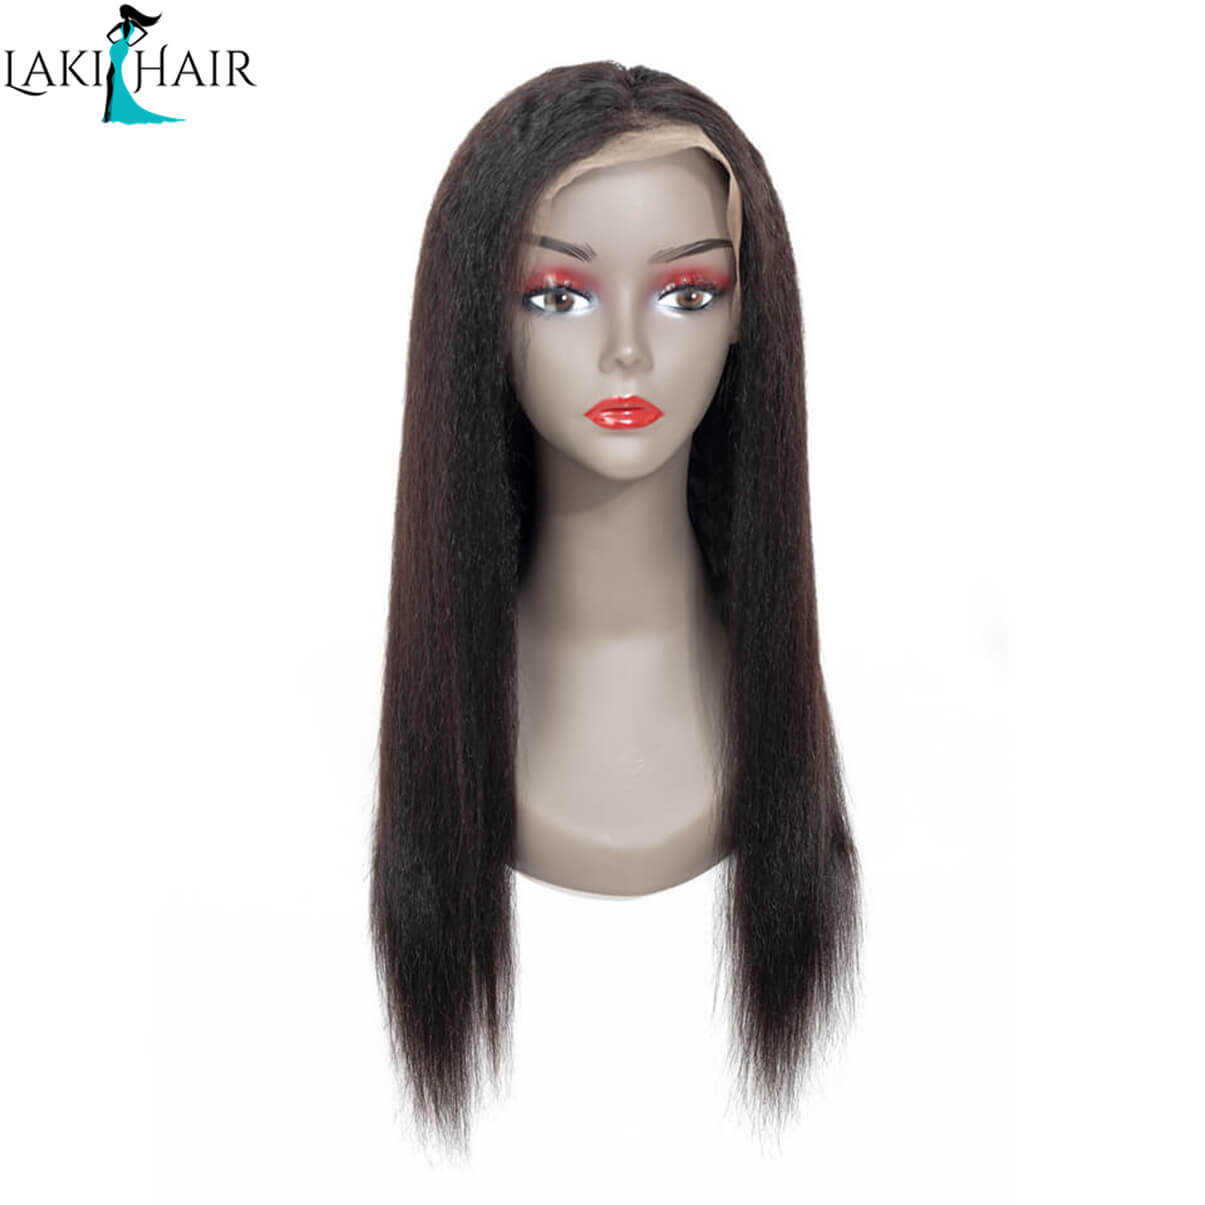 Lakihair Lace Front Wigs Kinky Straight Virgin Human Hair Lace Wigs With Baby Hair